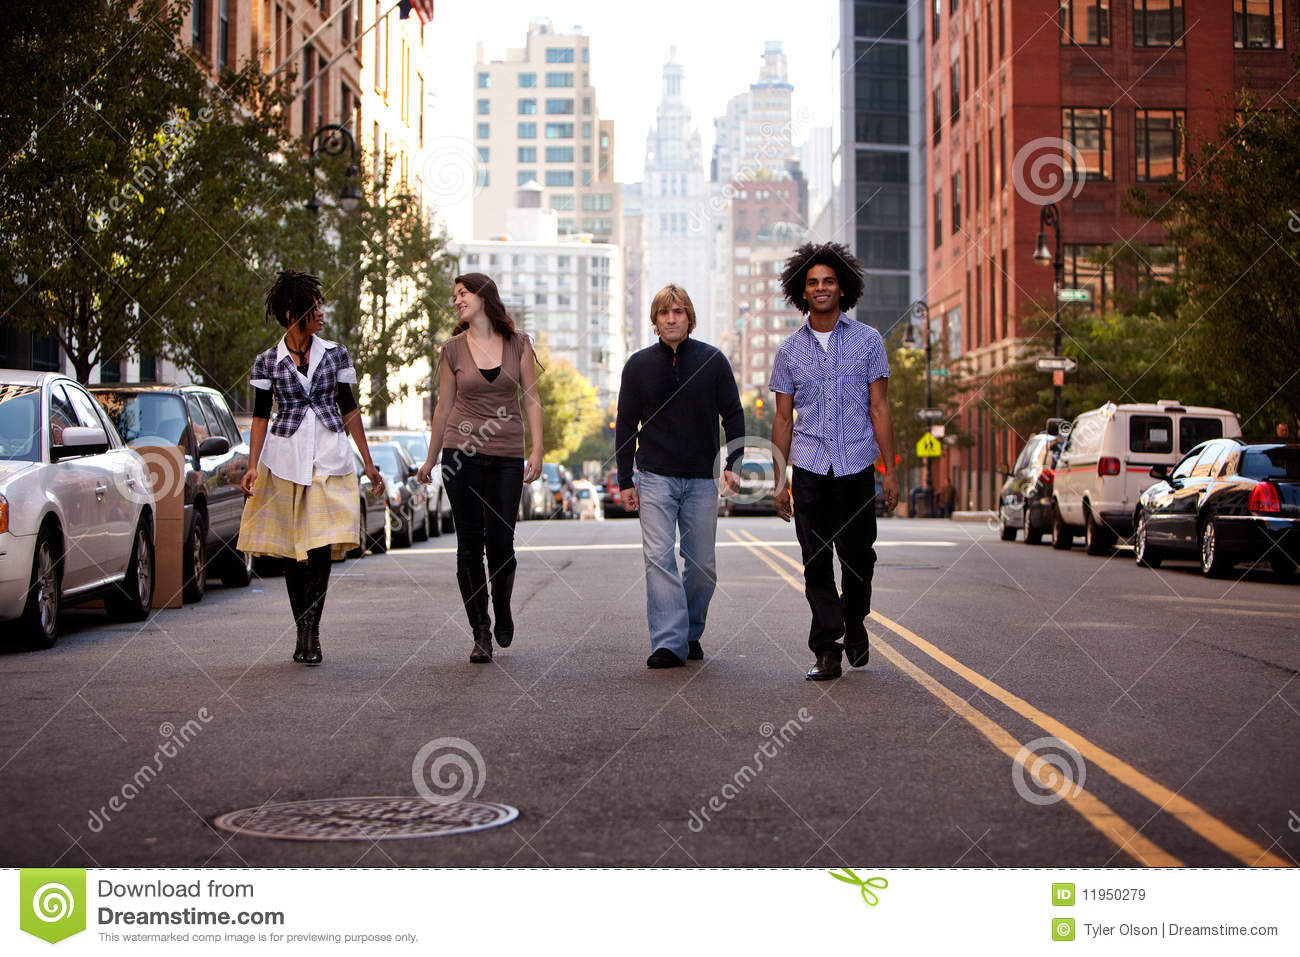 Young People in City